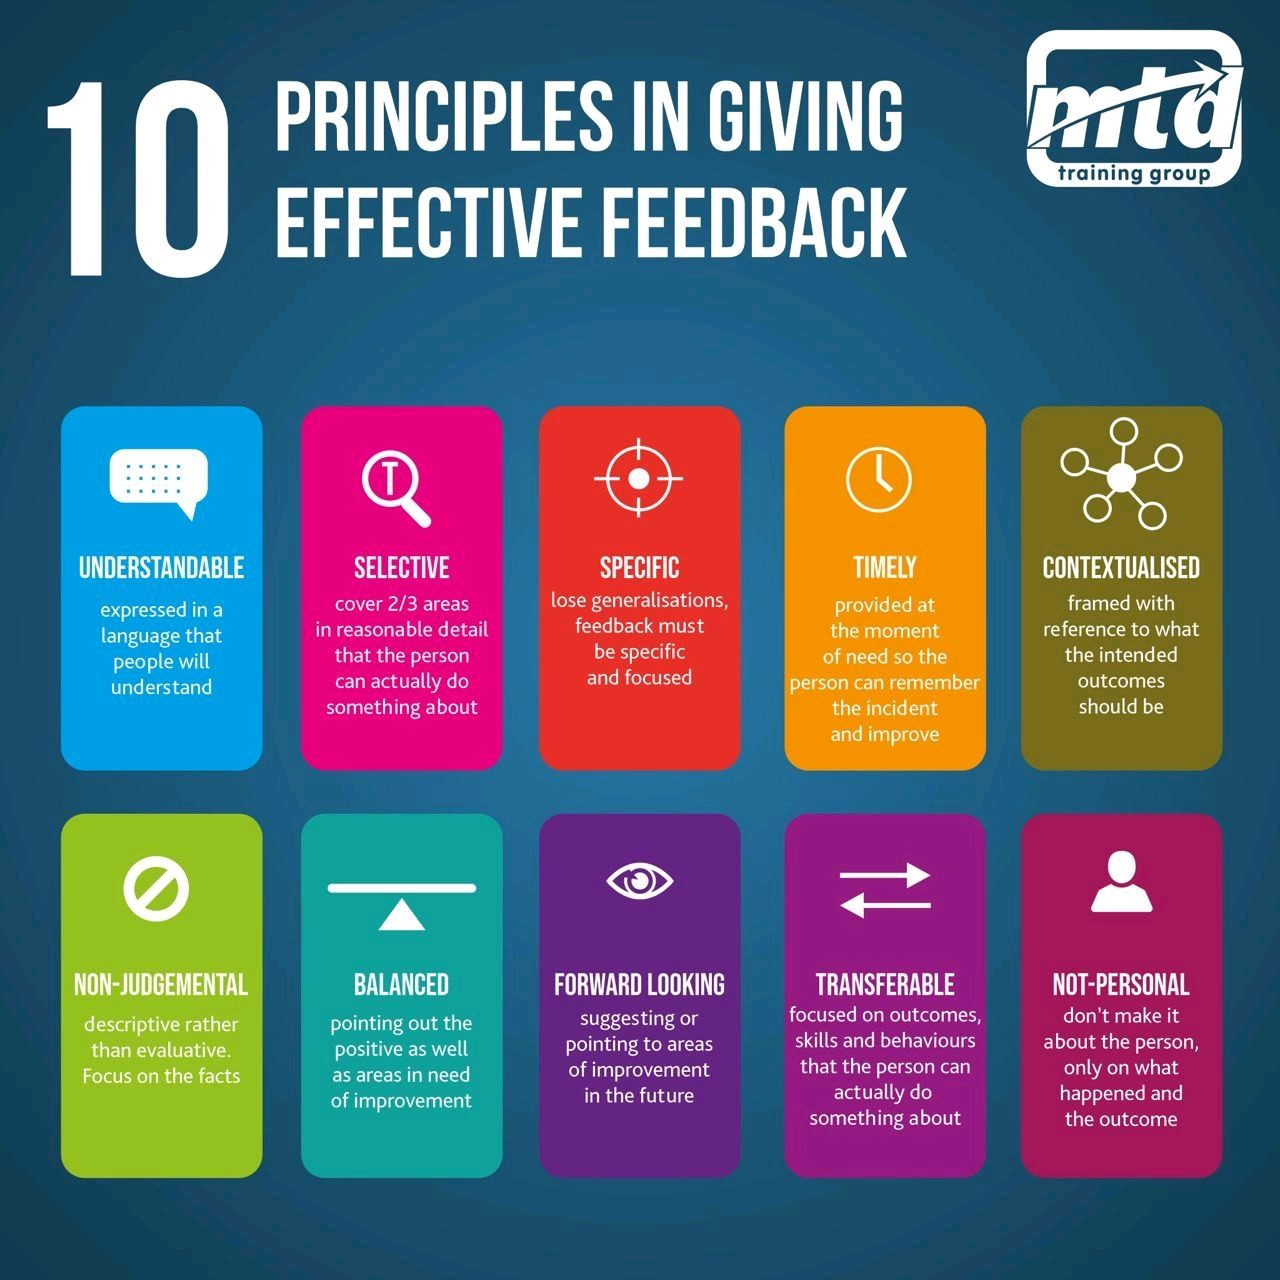 If you ever have to give feedback